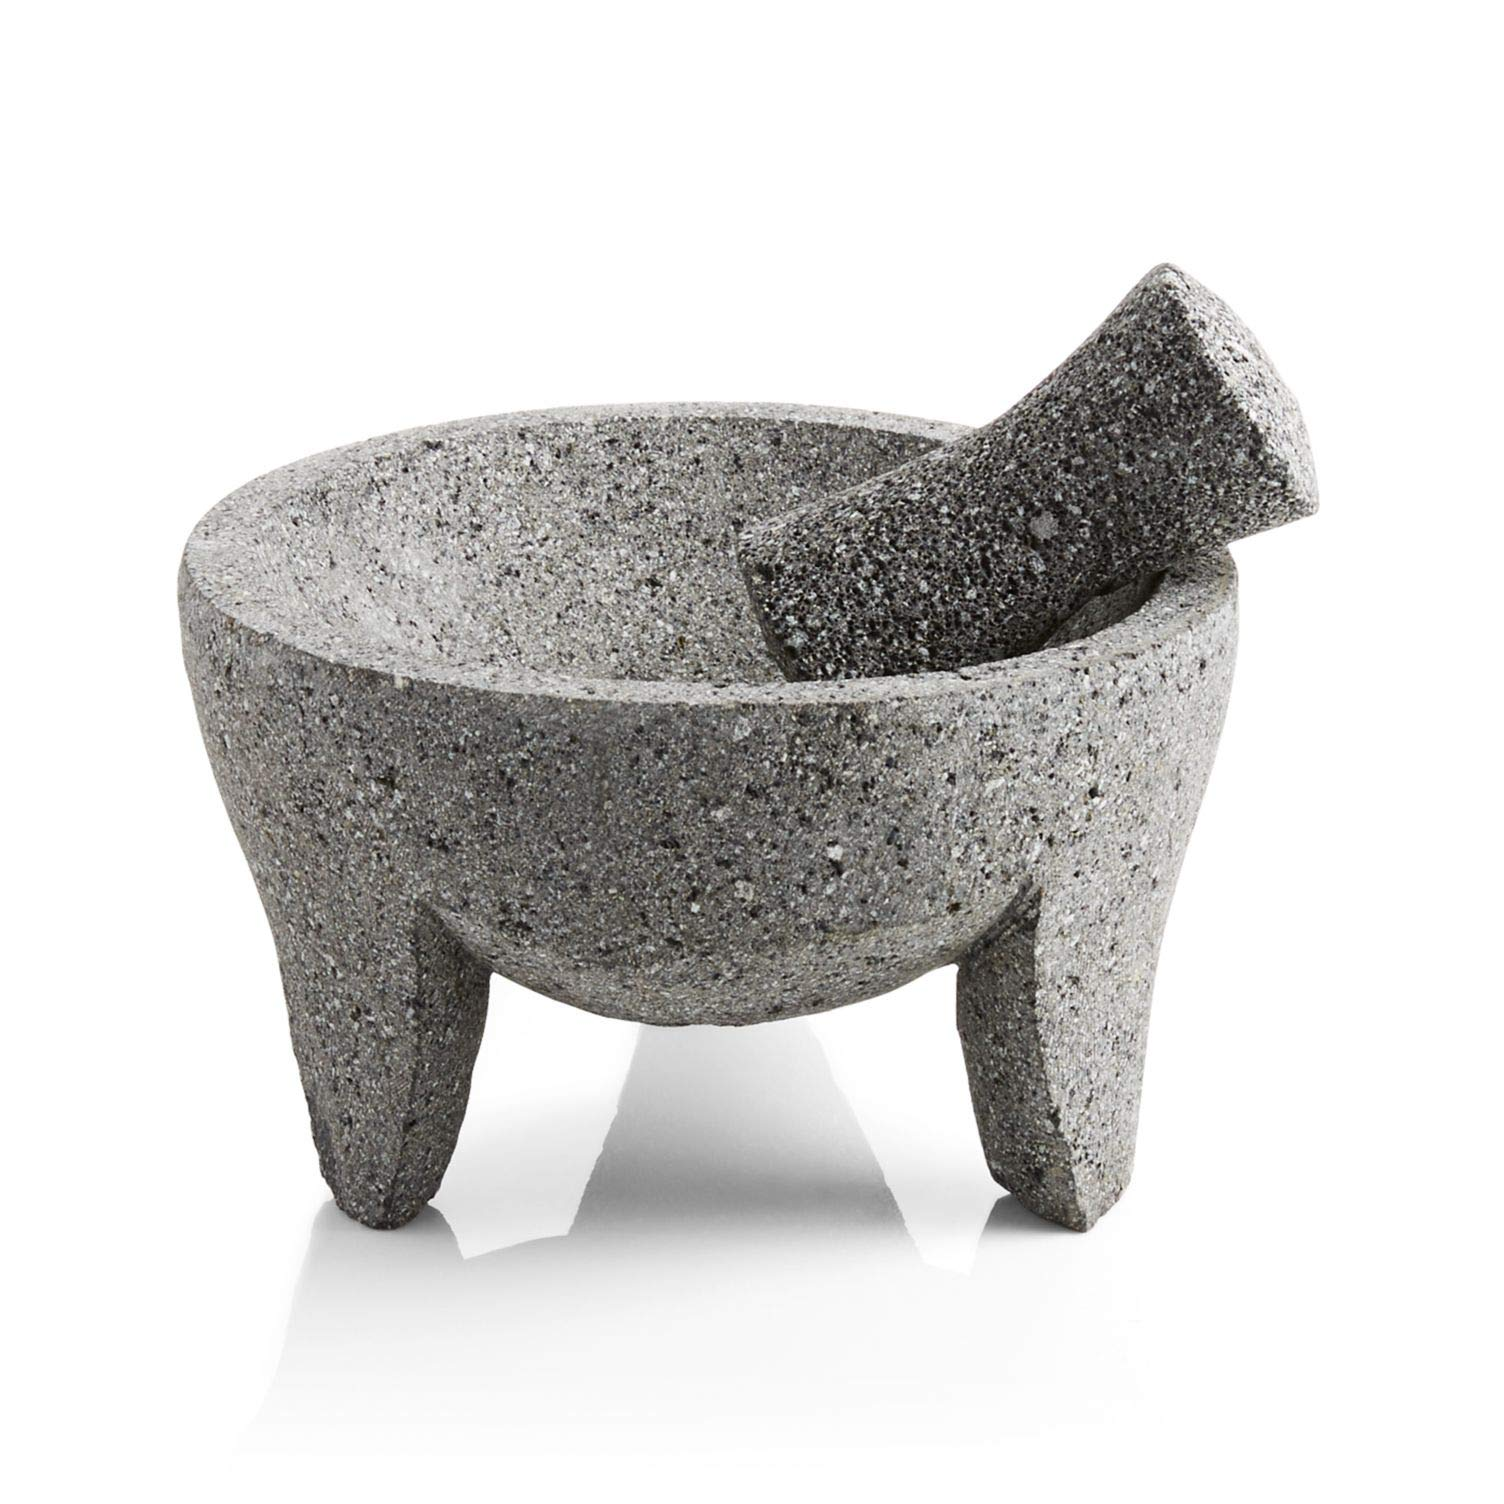 Authentic Mexican Volcanic Lava Rock Molcajete. Handmade Eight inch Large Mortar and Pestle. by Spice Bay Foods